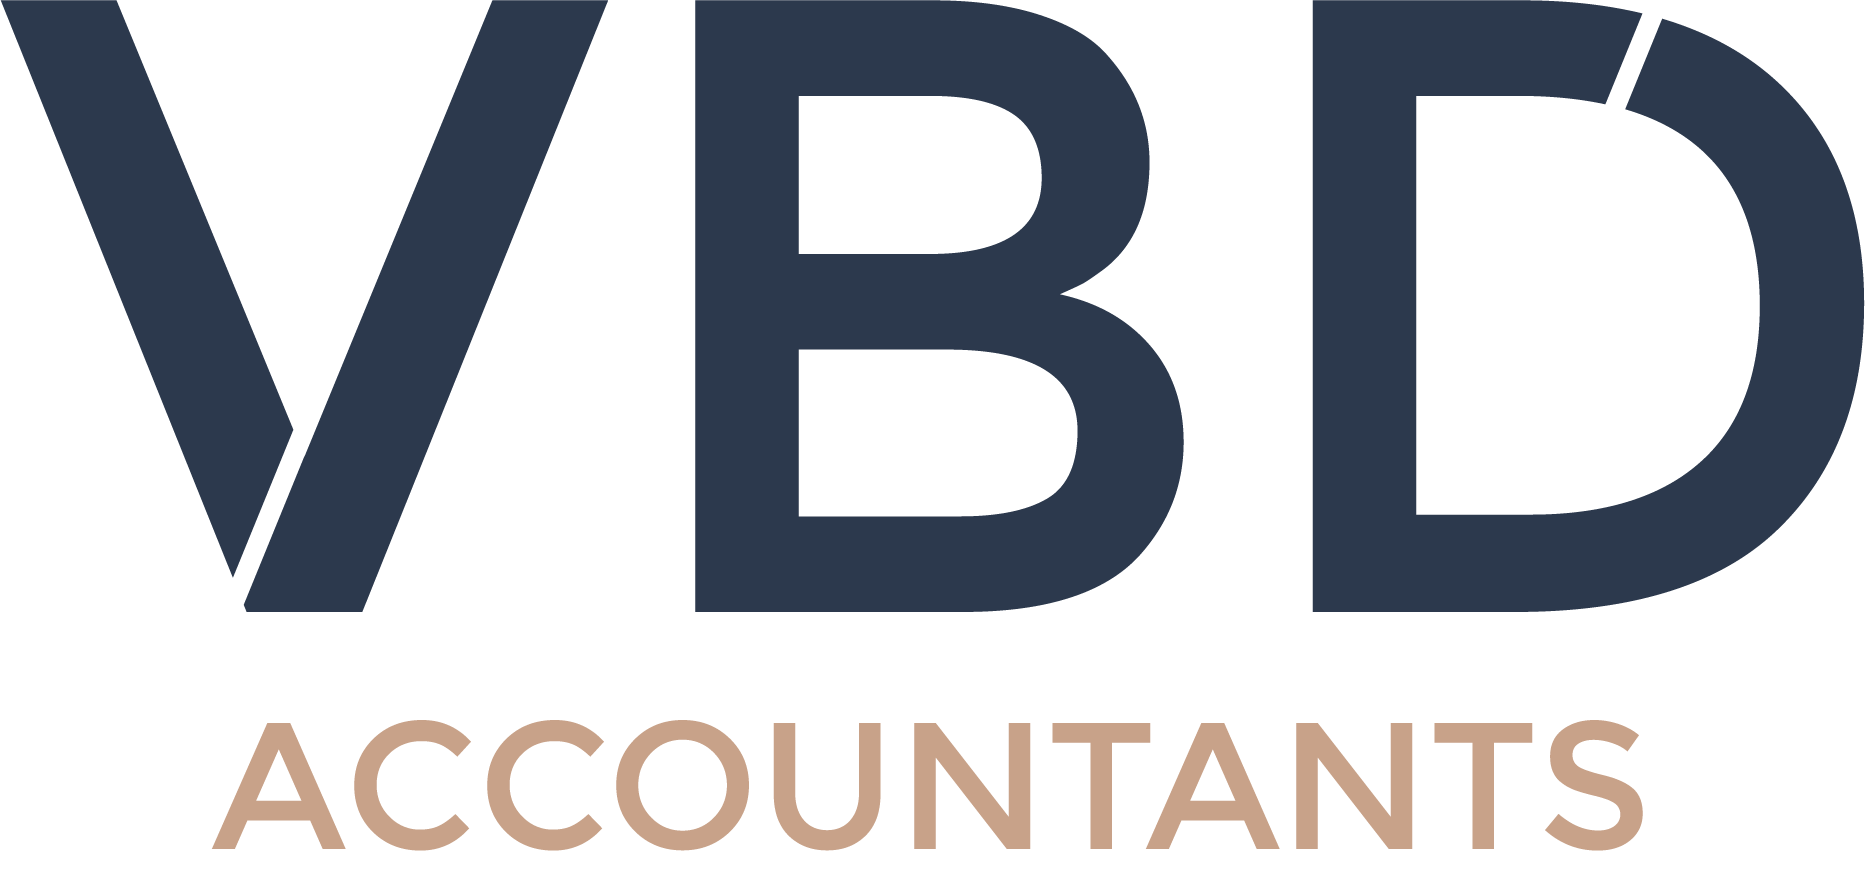 VBD Accountants